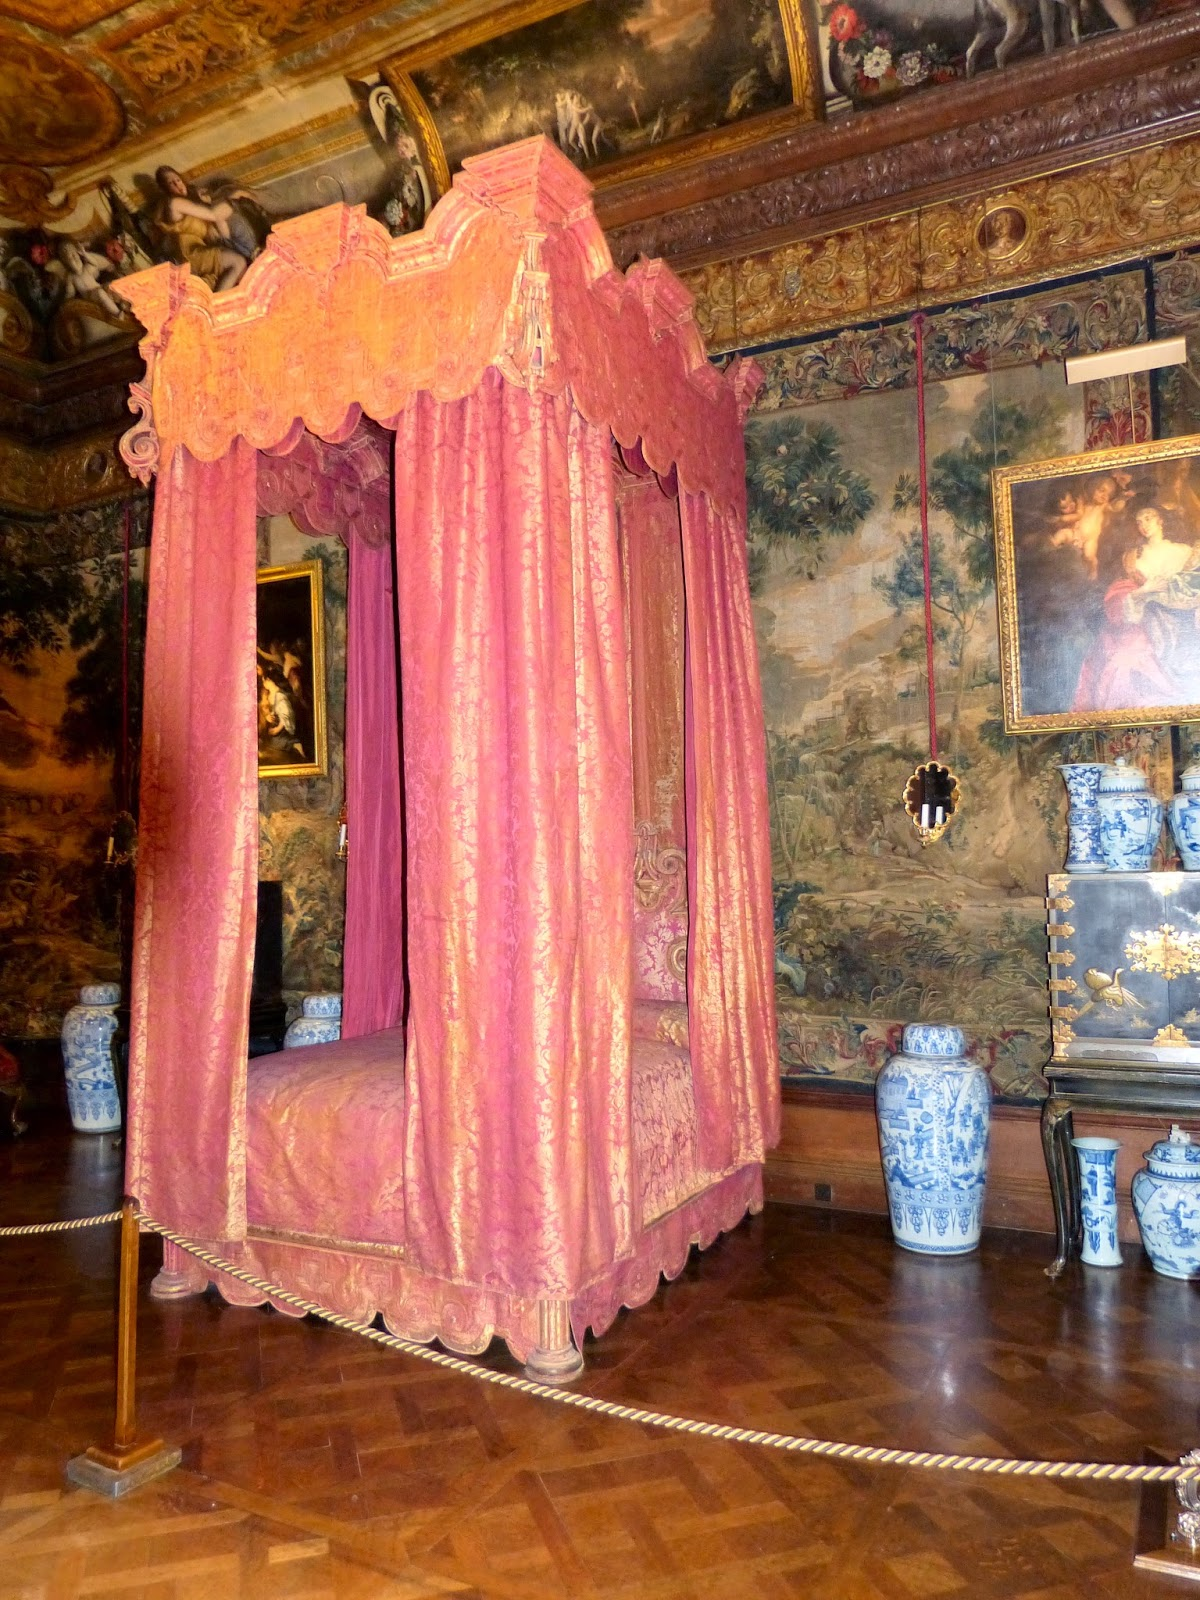 The State Bedroom, Chatsworth